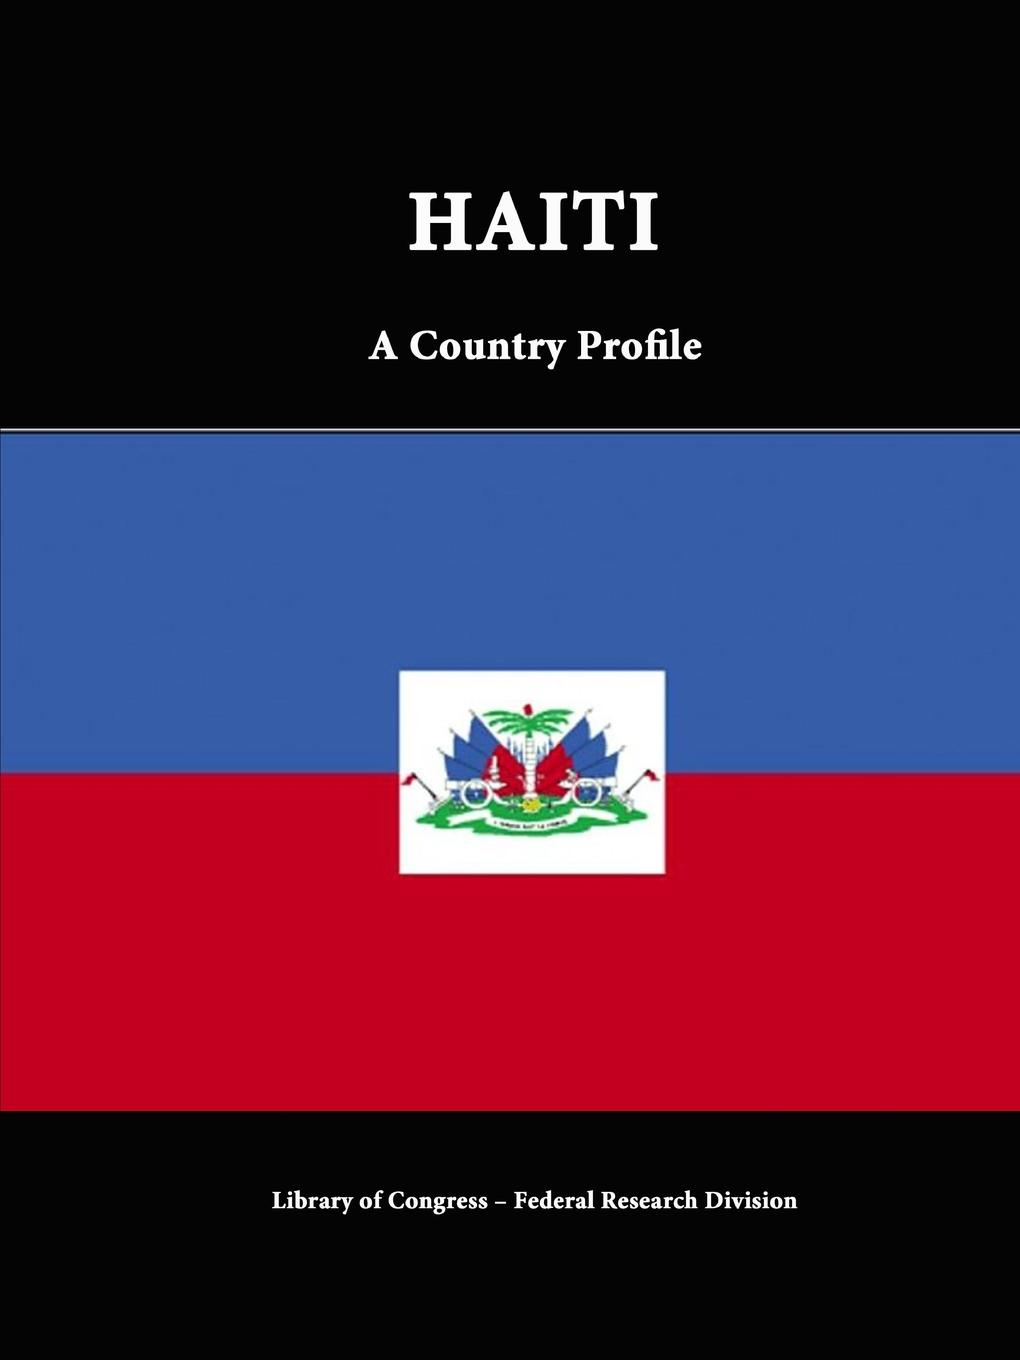 Library of Congress, Federal Research Division Haiti. A Country Profile